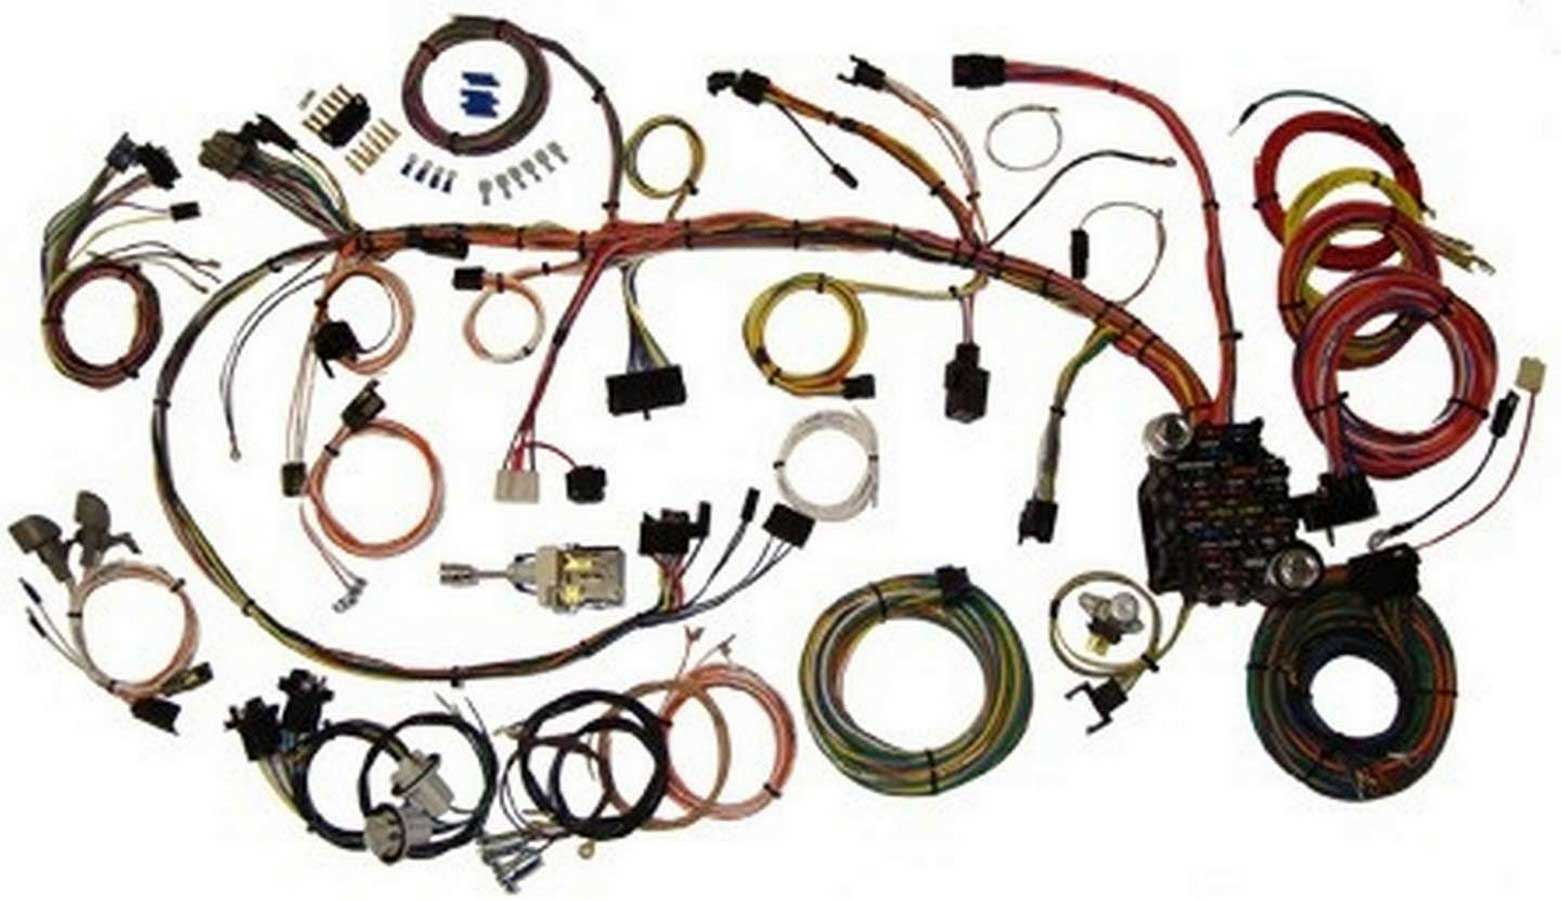 Shop For Wiring Harnesses Arob Performance Parts Fuel Tank Wire Harness 70 73 Camaro